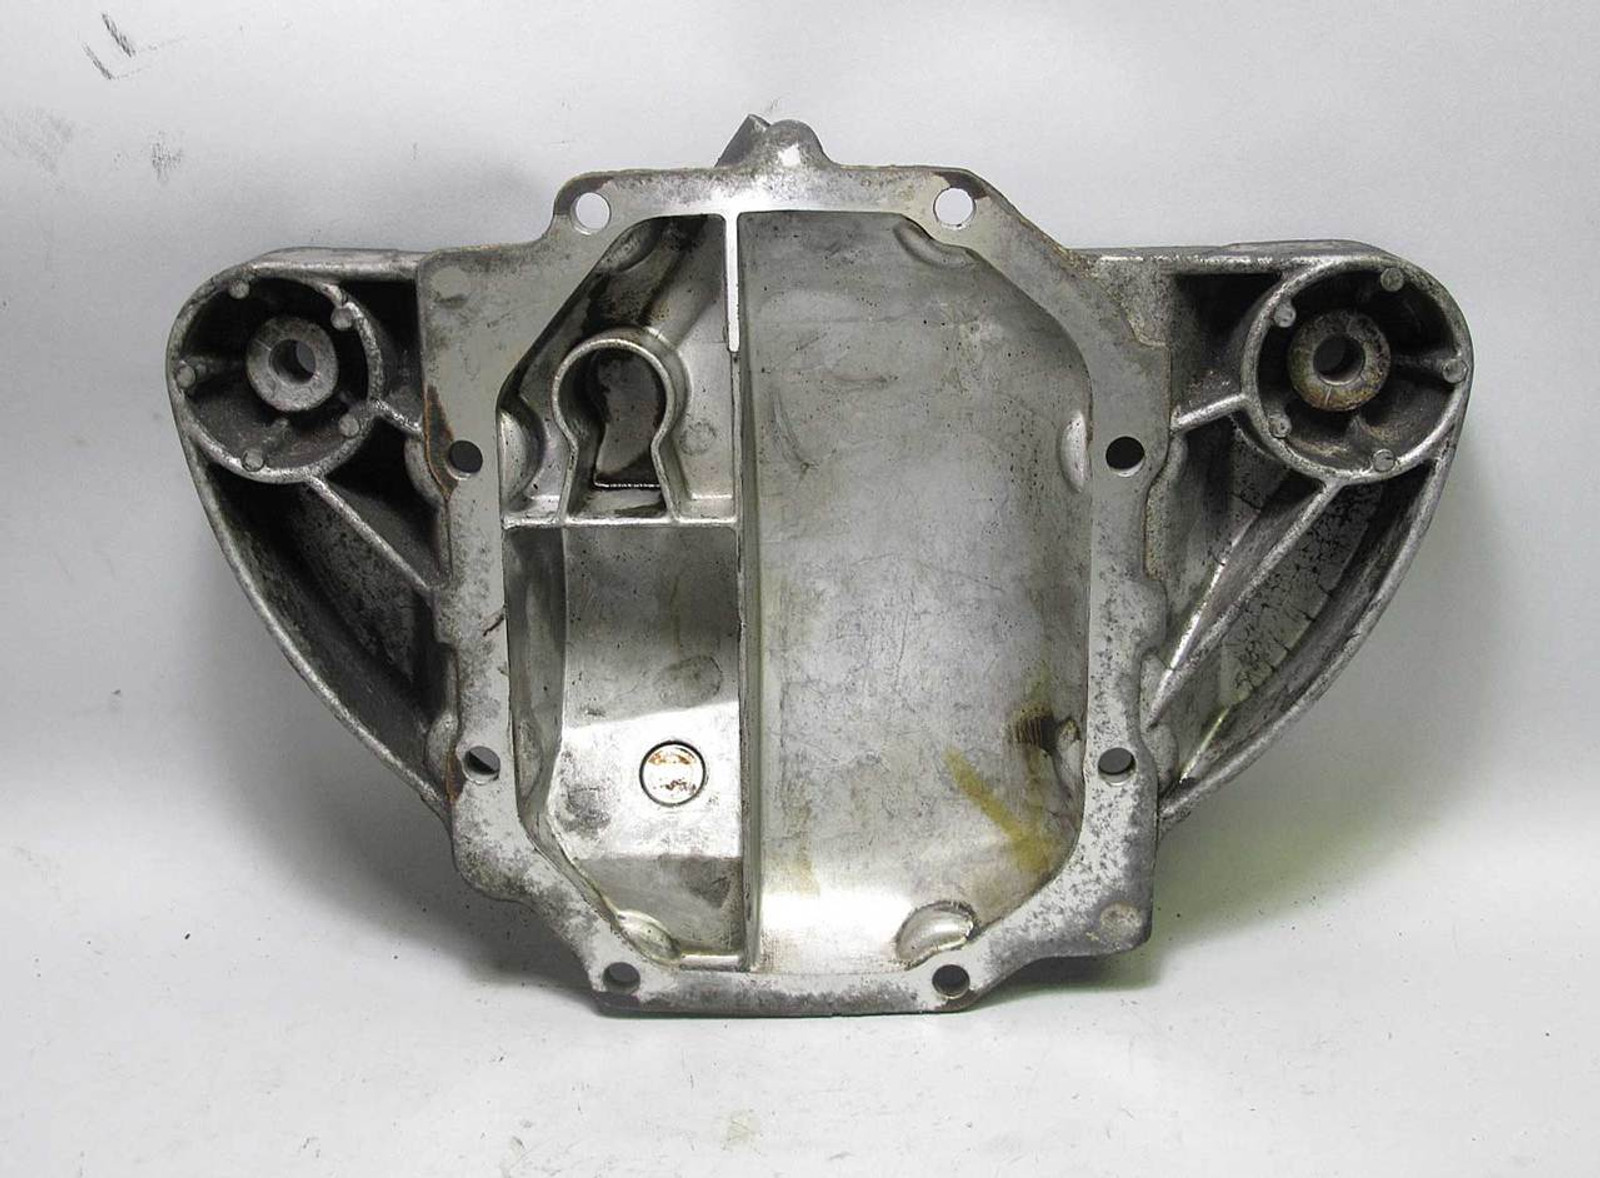 Bmw E39 540i M62 V8 Factory Differential Final Drive Rear Cover Plate 1997 2003 Prussian Motors